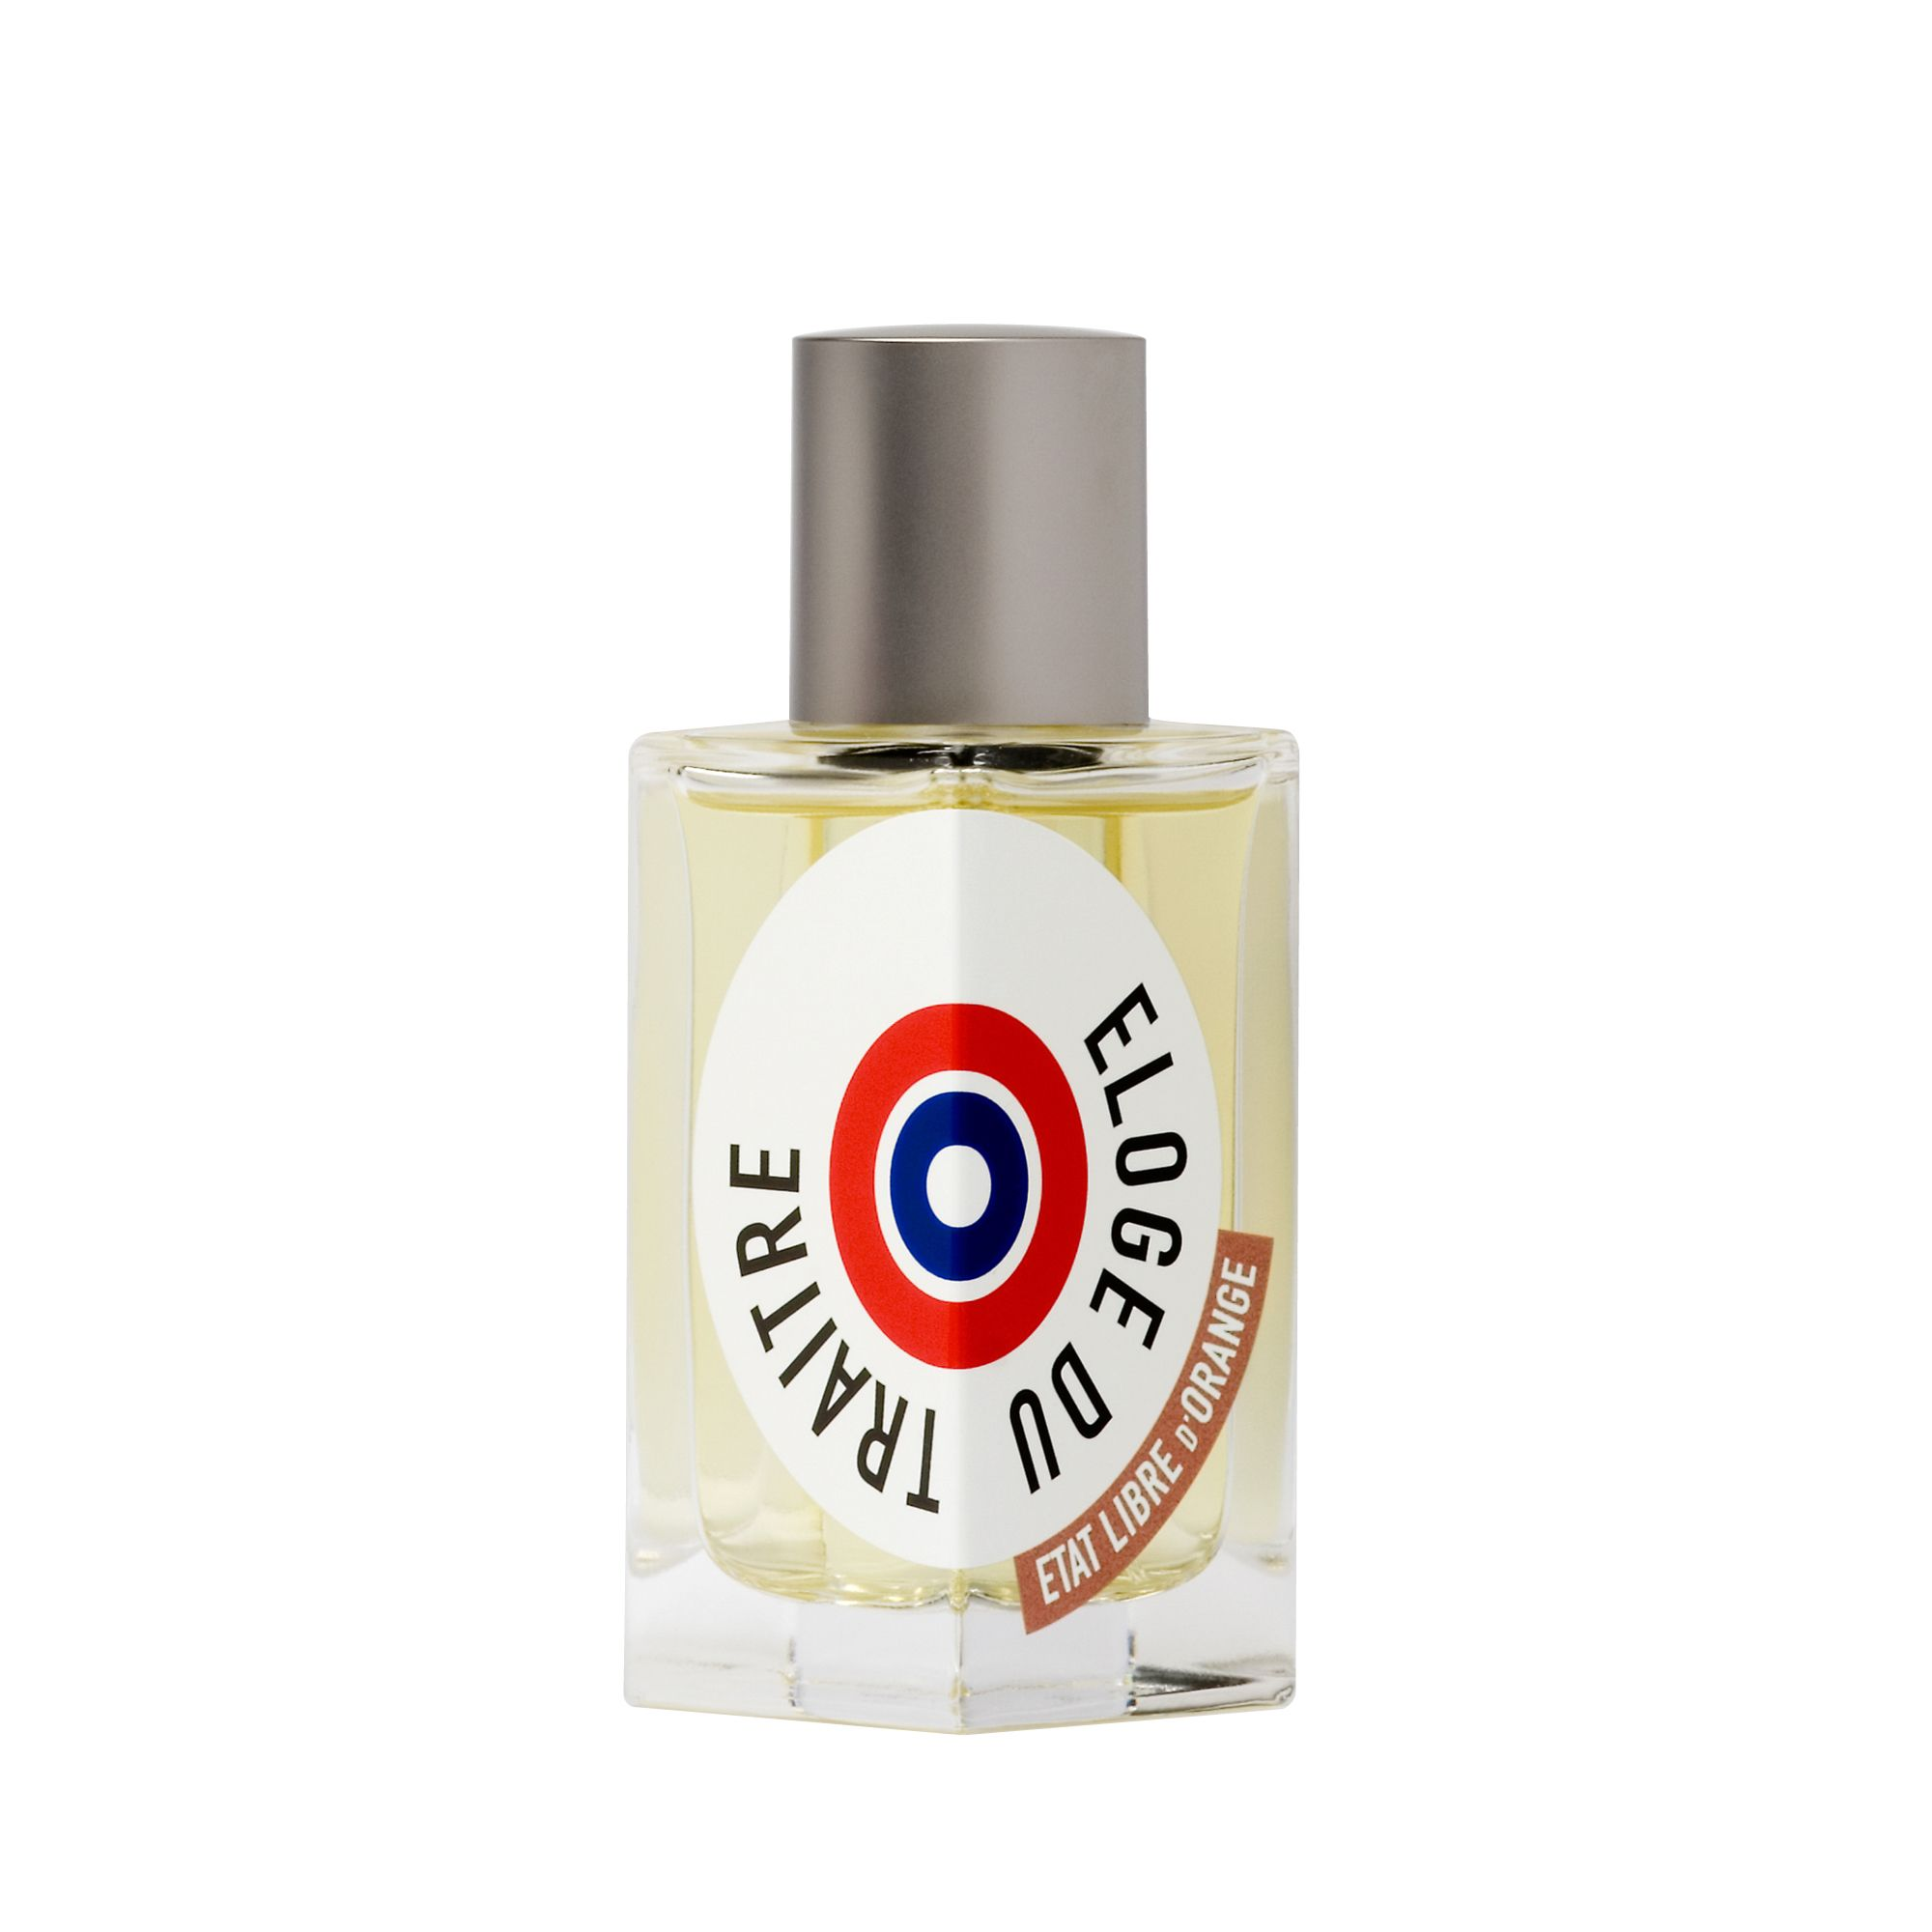 Etat Libre d'Orange Etat Libre d'Orange Eloge du Traitre Eau de Parfum 50ml